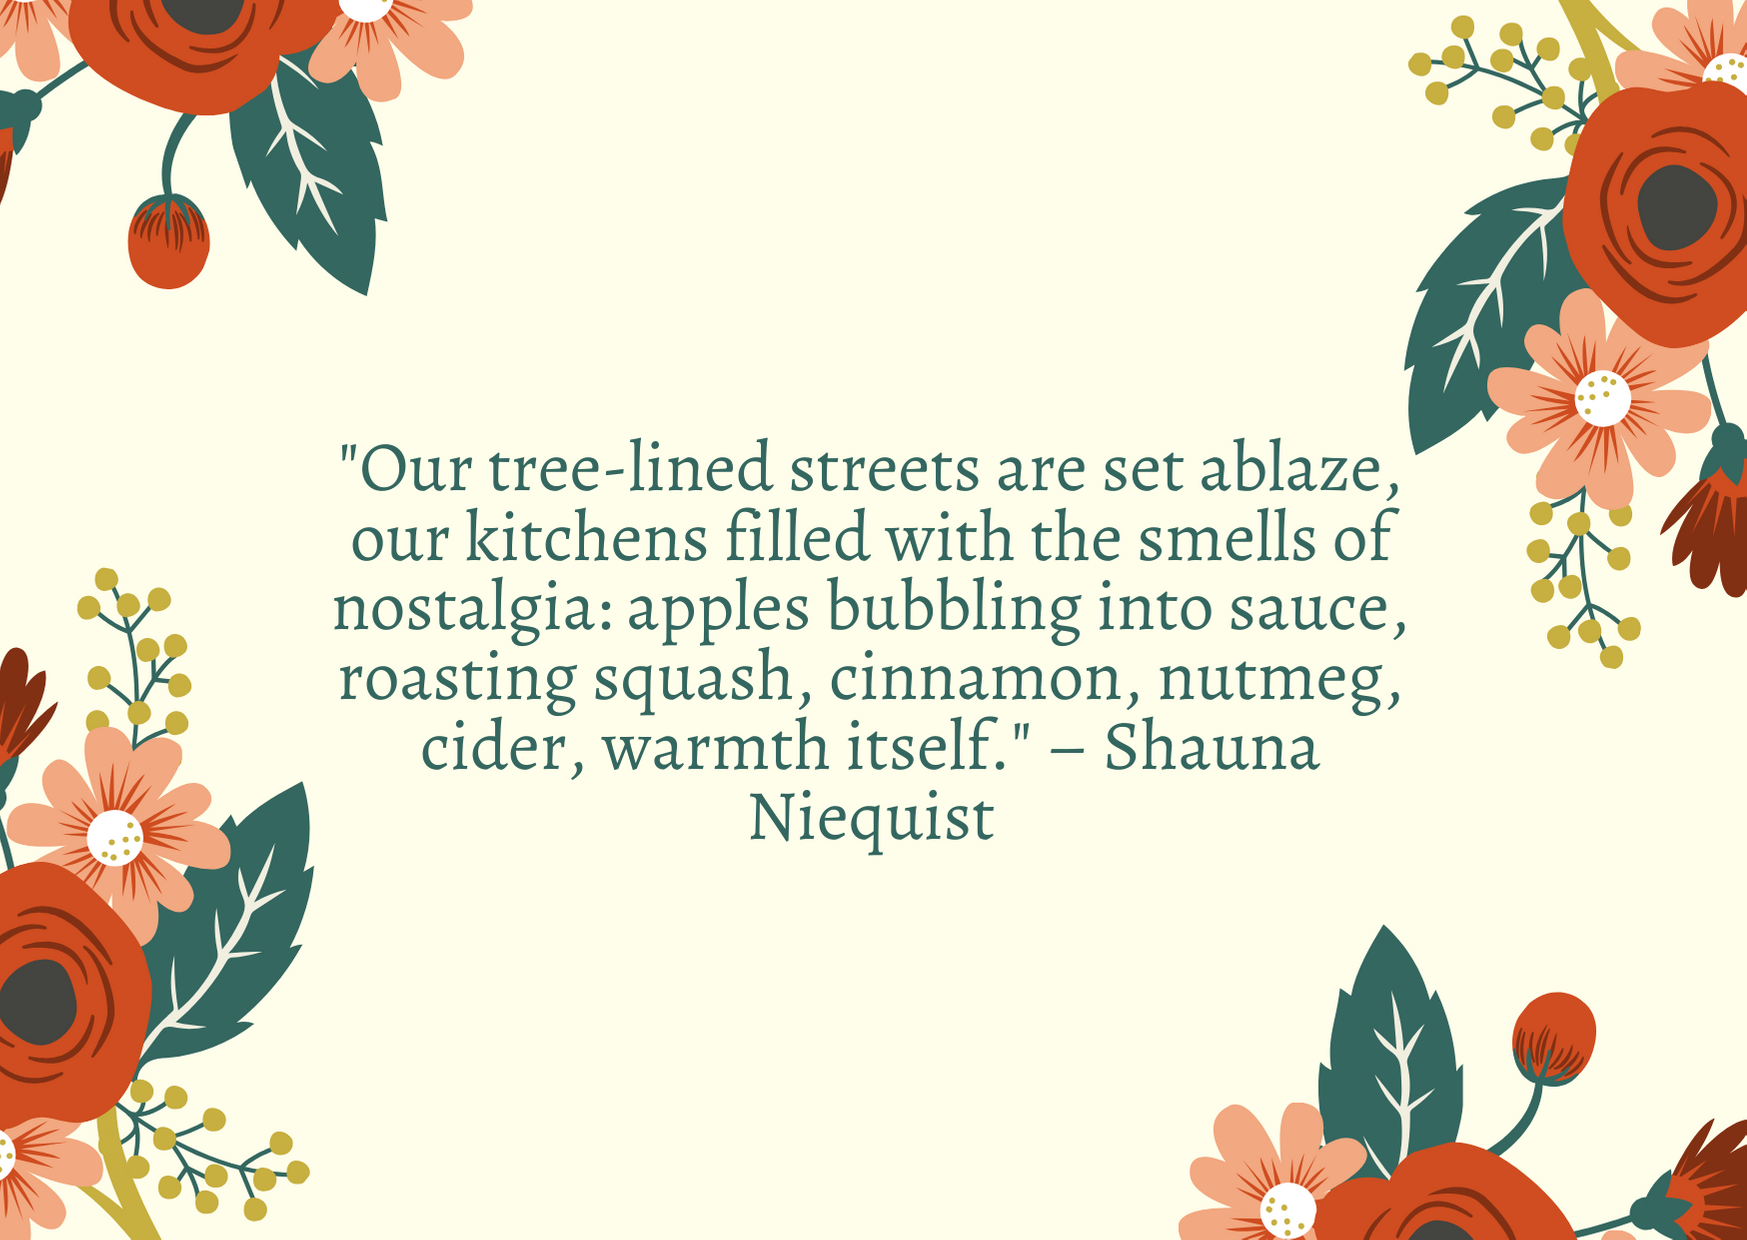 """Our tree-lined streets are set ablaze, our kitchens filled with the smells of nostalgia: apples bubbling into sauce, roasting squash, cinnamon, nutmeg, cider, warmth itself."" – Shauna Niequist"